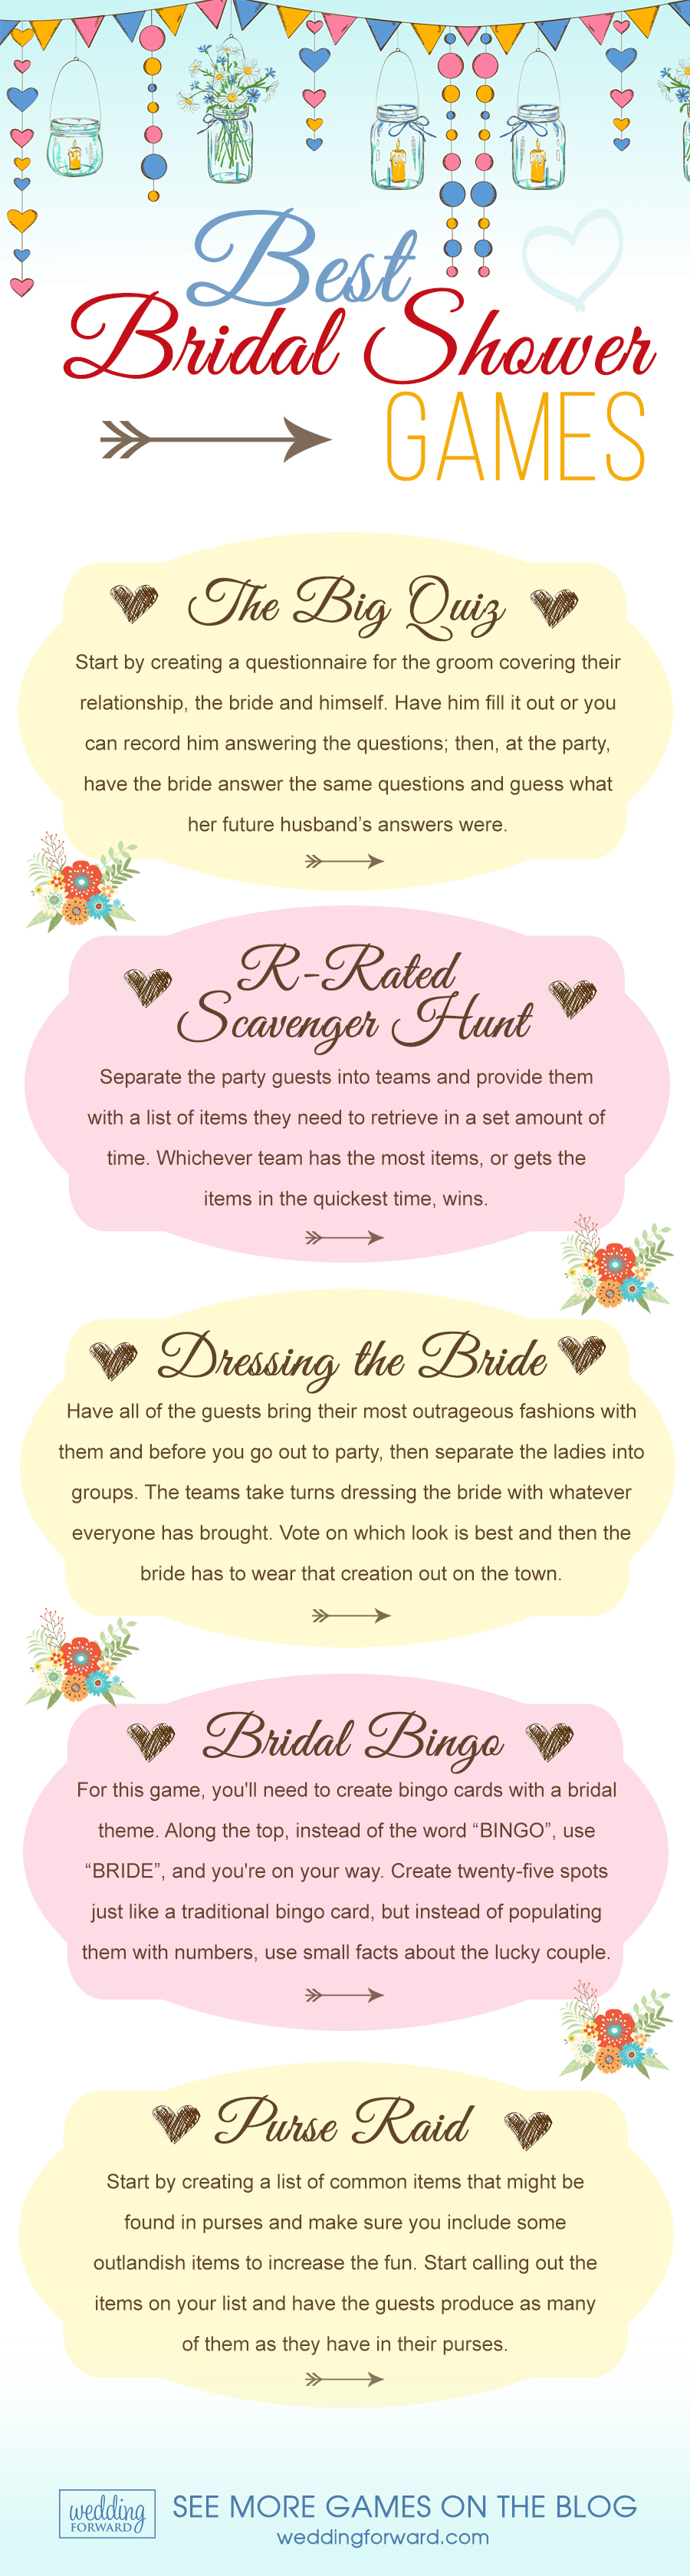 7 of the Best Bridal Shower Games for the Perfect Bridal Shower